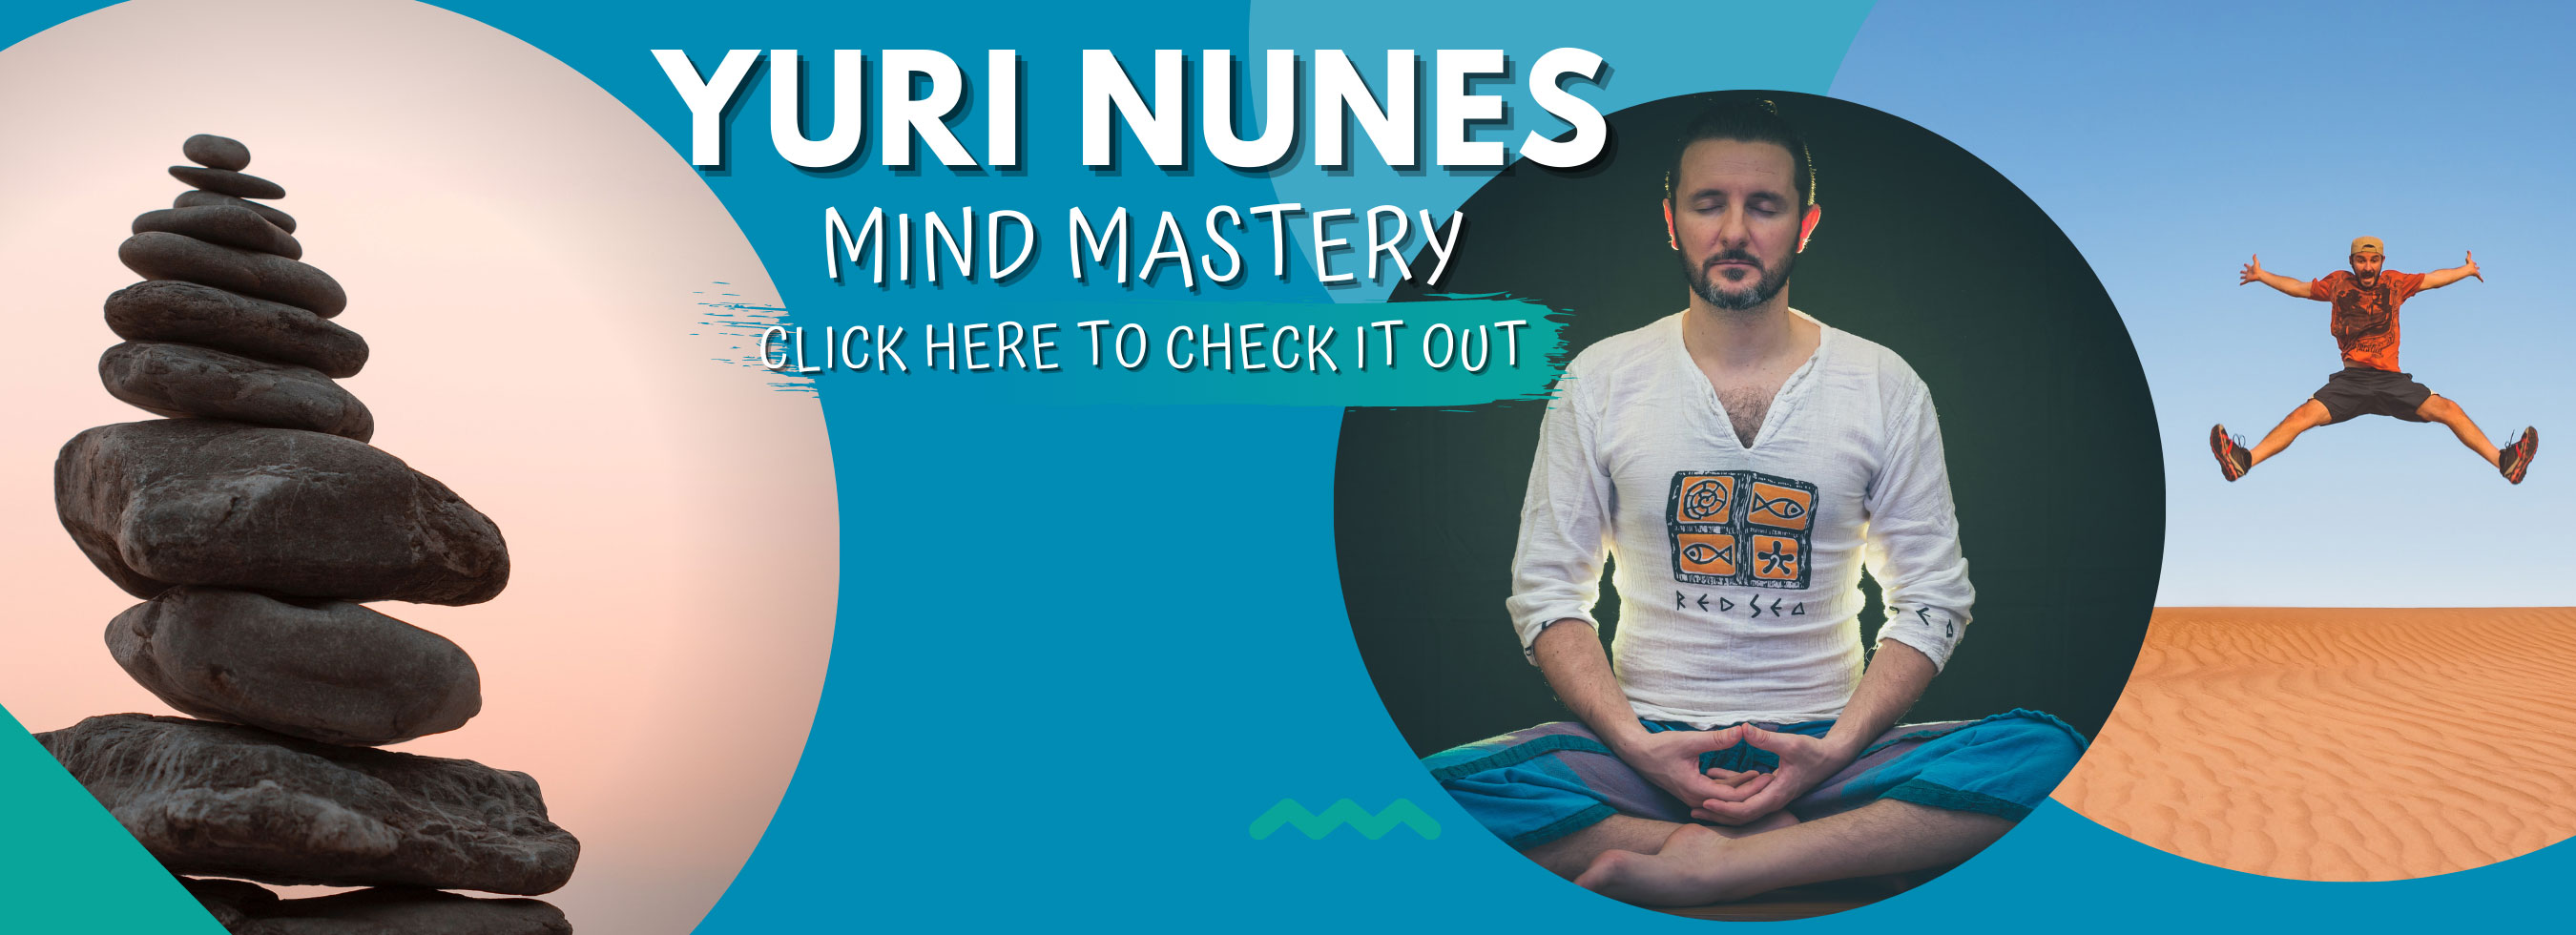 Mind Mastery - Online Course